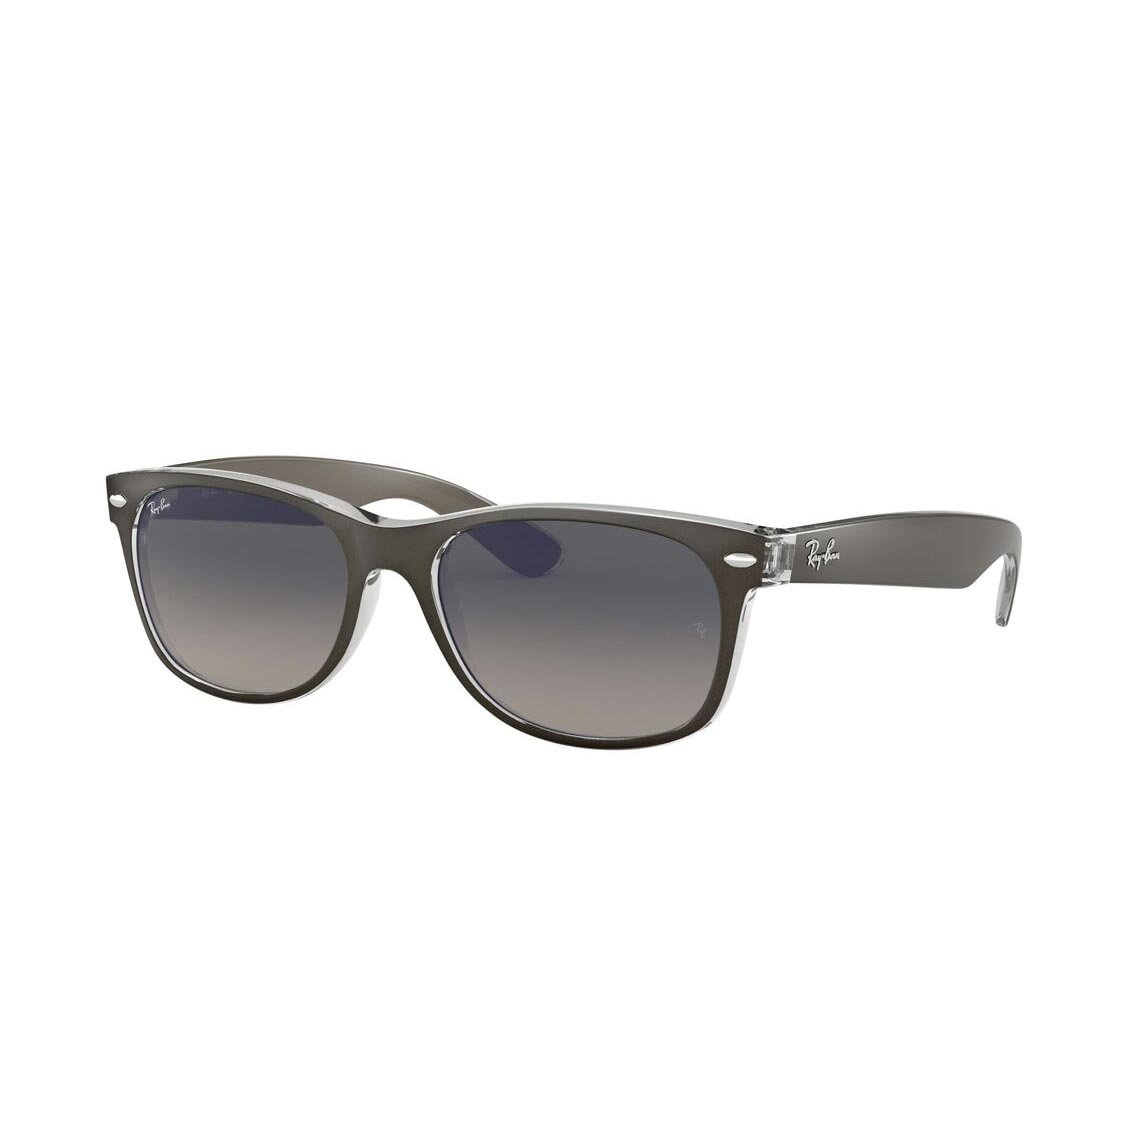 Ray-Ban New Wayfarer RB2132 614371 52